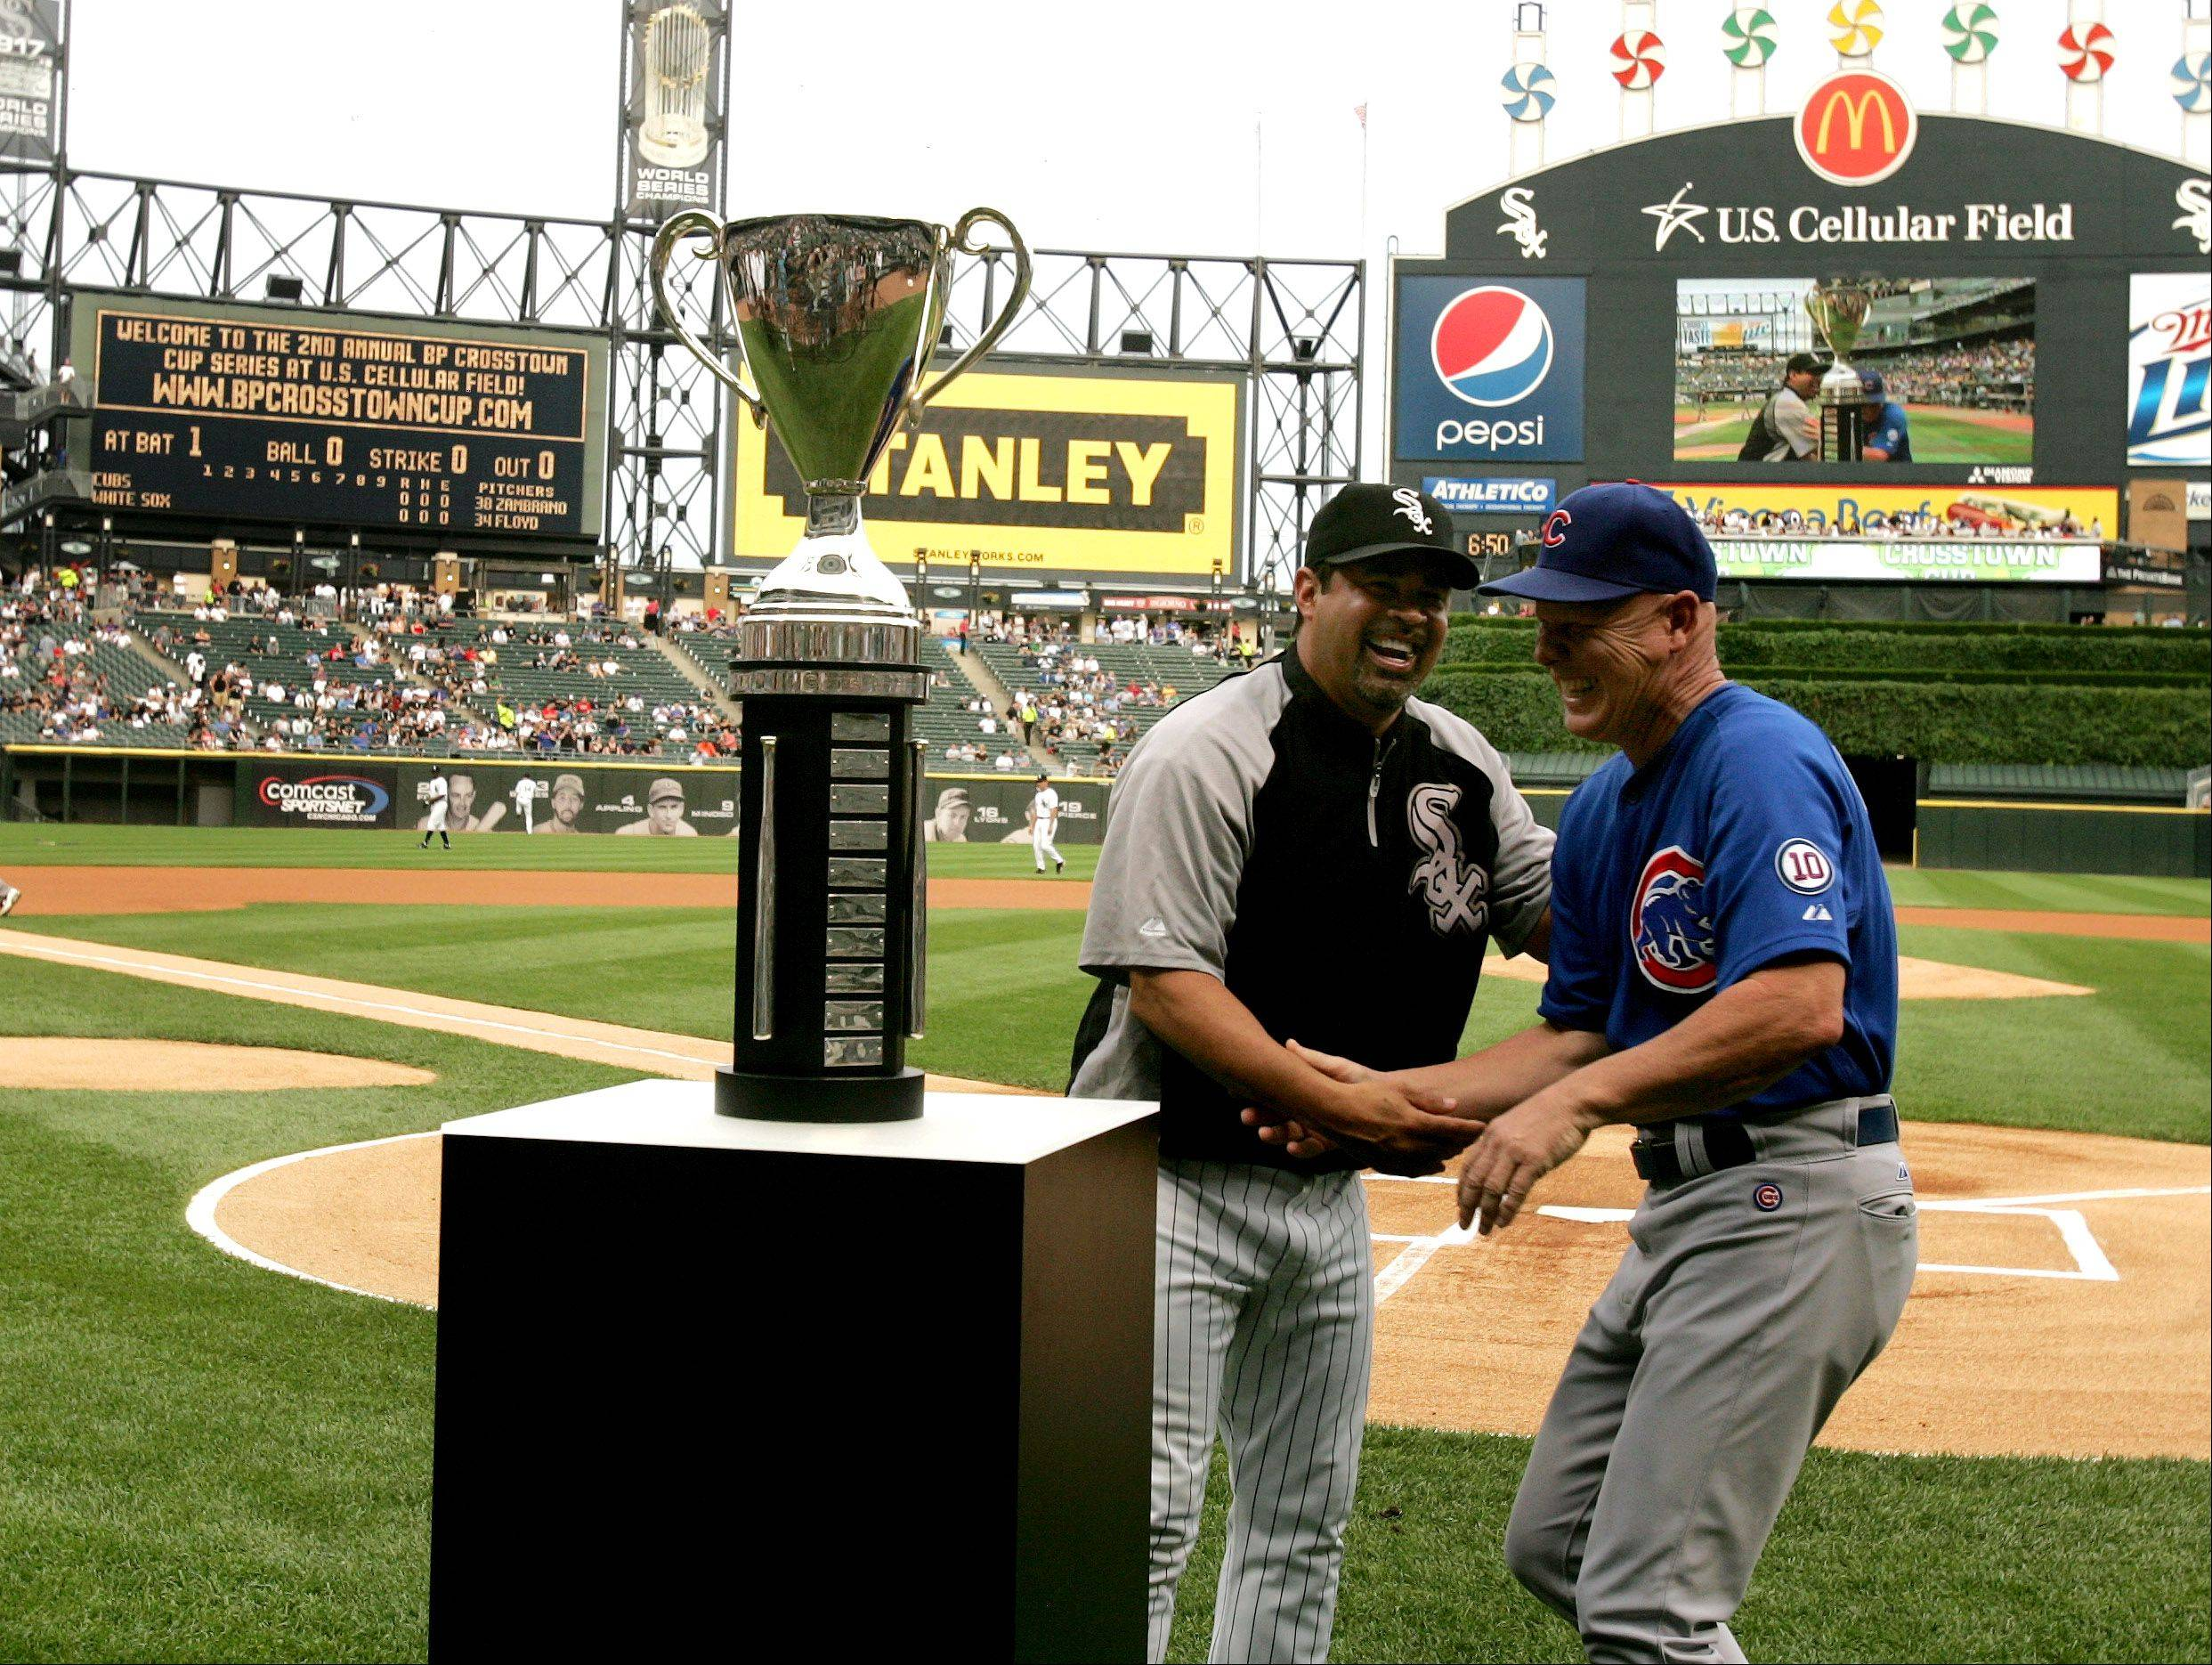 Managers Mike Quade and Ozzie Guillen of the Chicago Cubs and the Chicago White Sox before the start of the game Monday night.